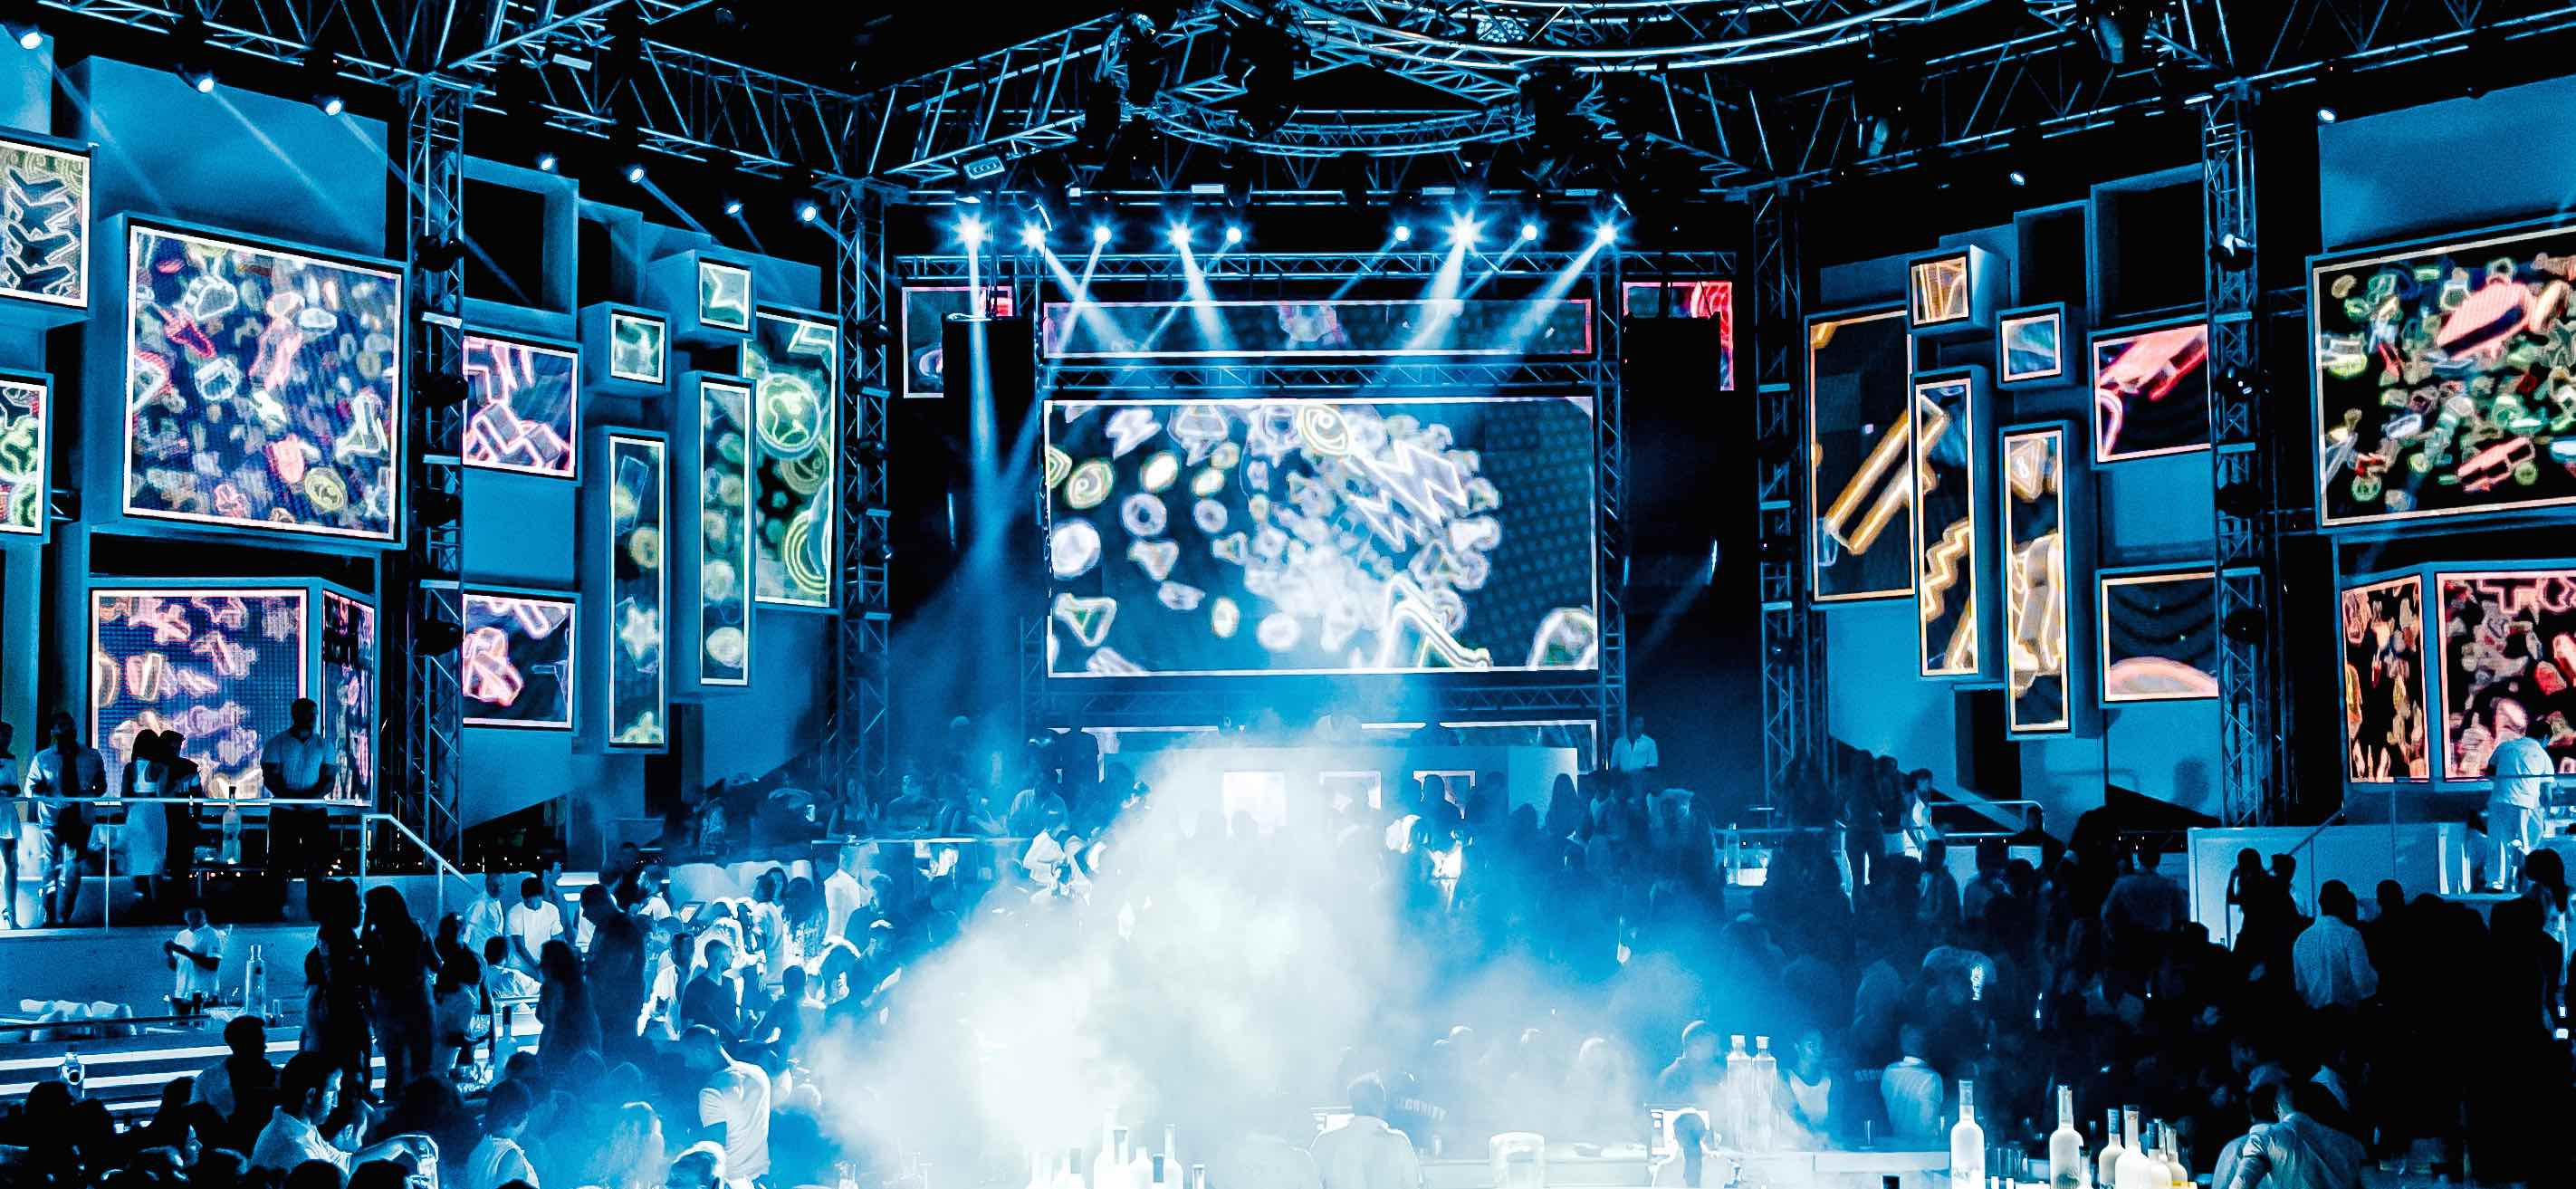 Supply Of Lighting And Video Mapping Projection To White Dubai